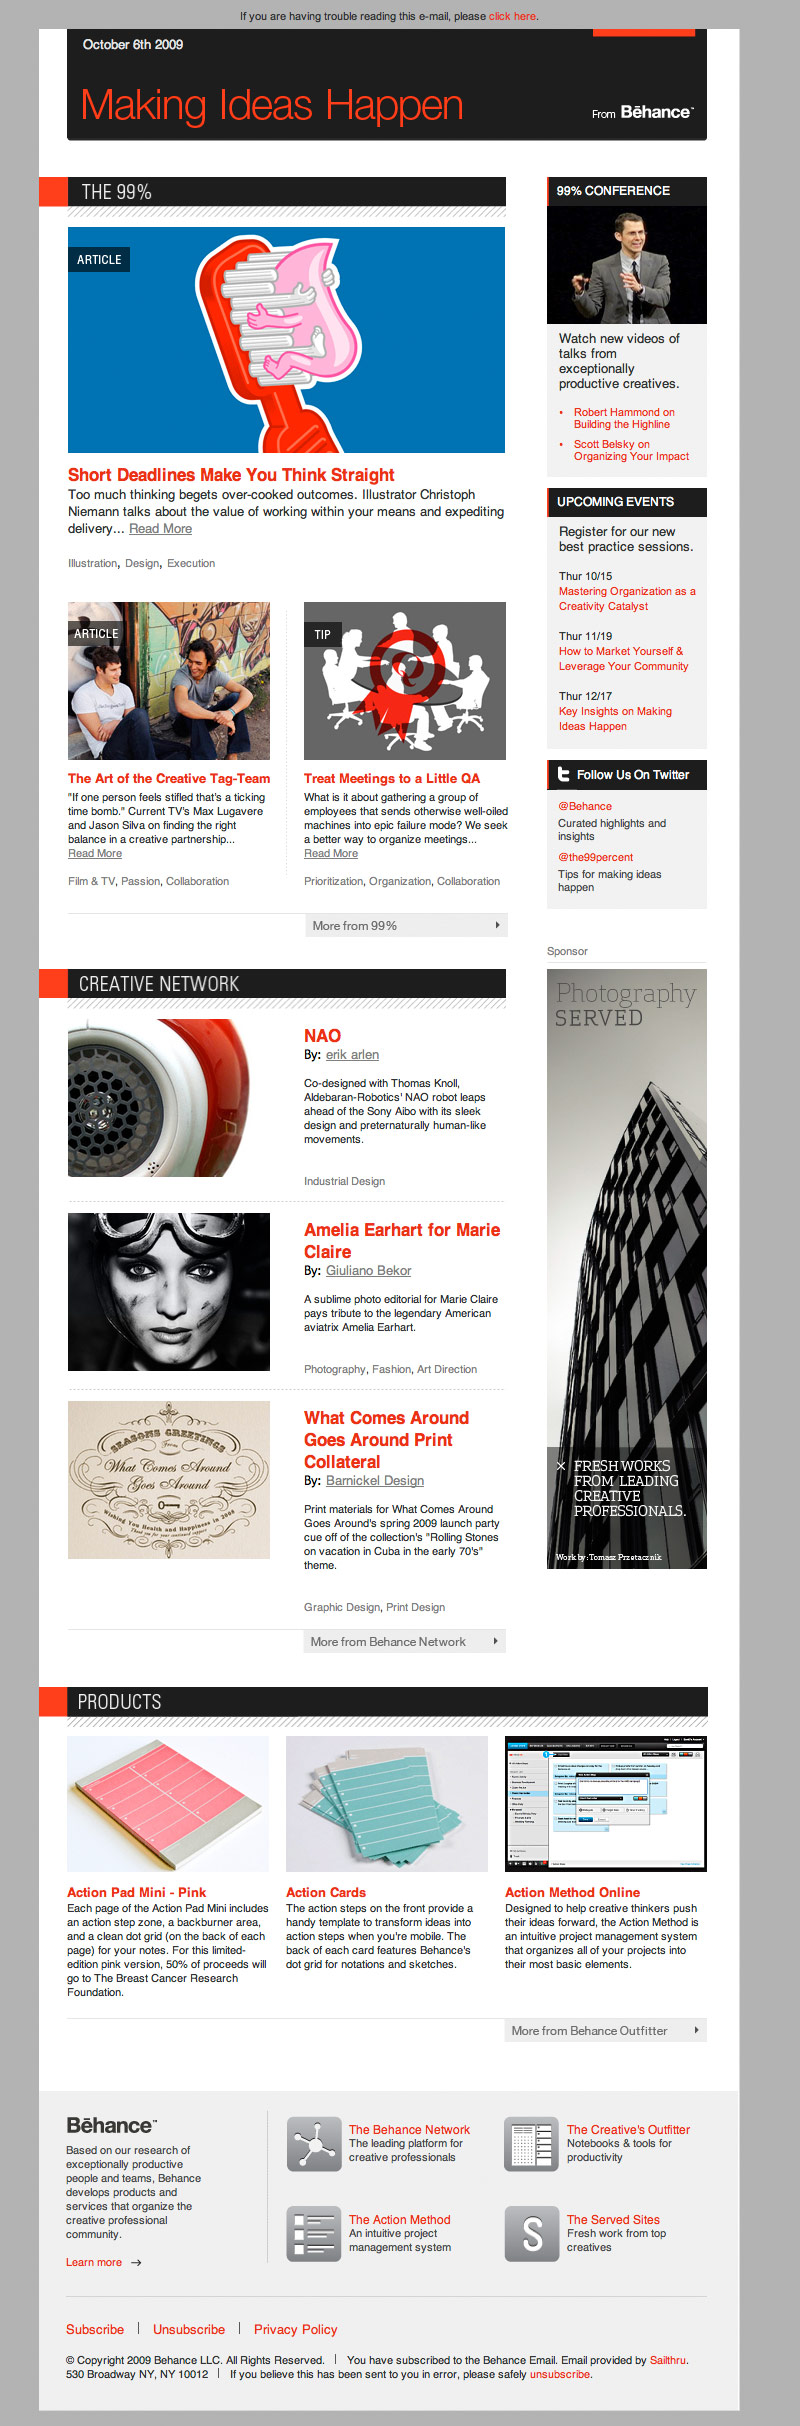 HTML Email Gallery   Design inspiration for emails and newsletters